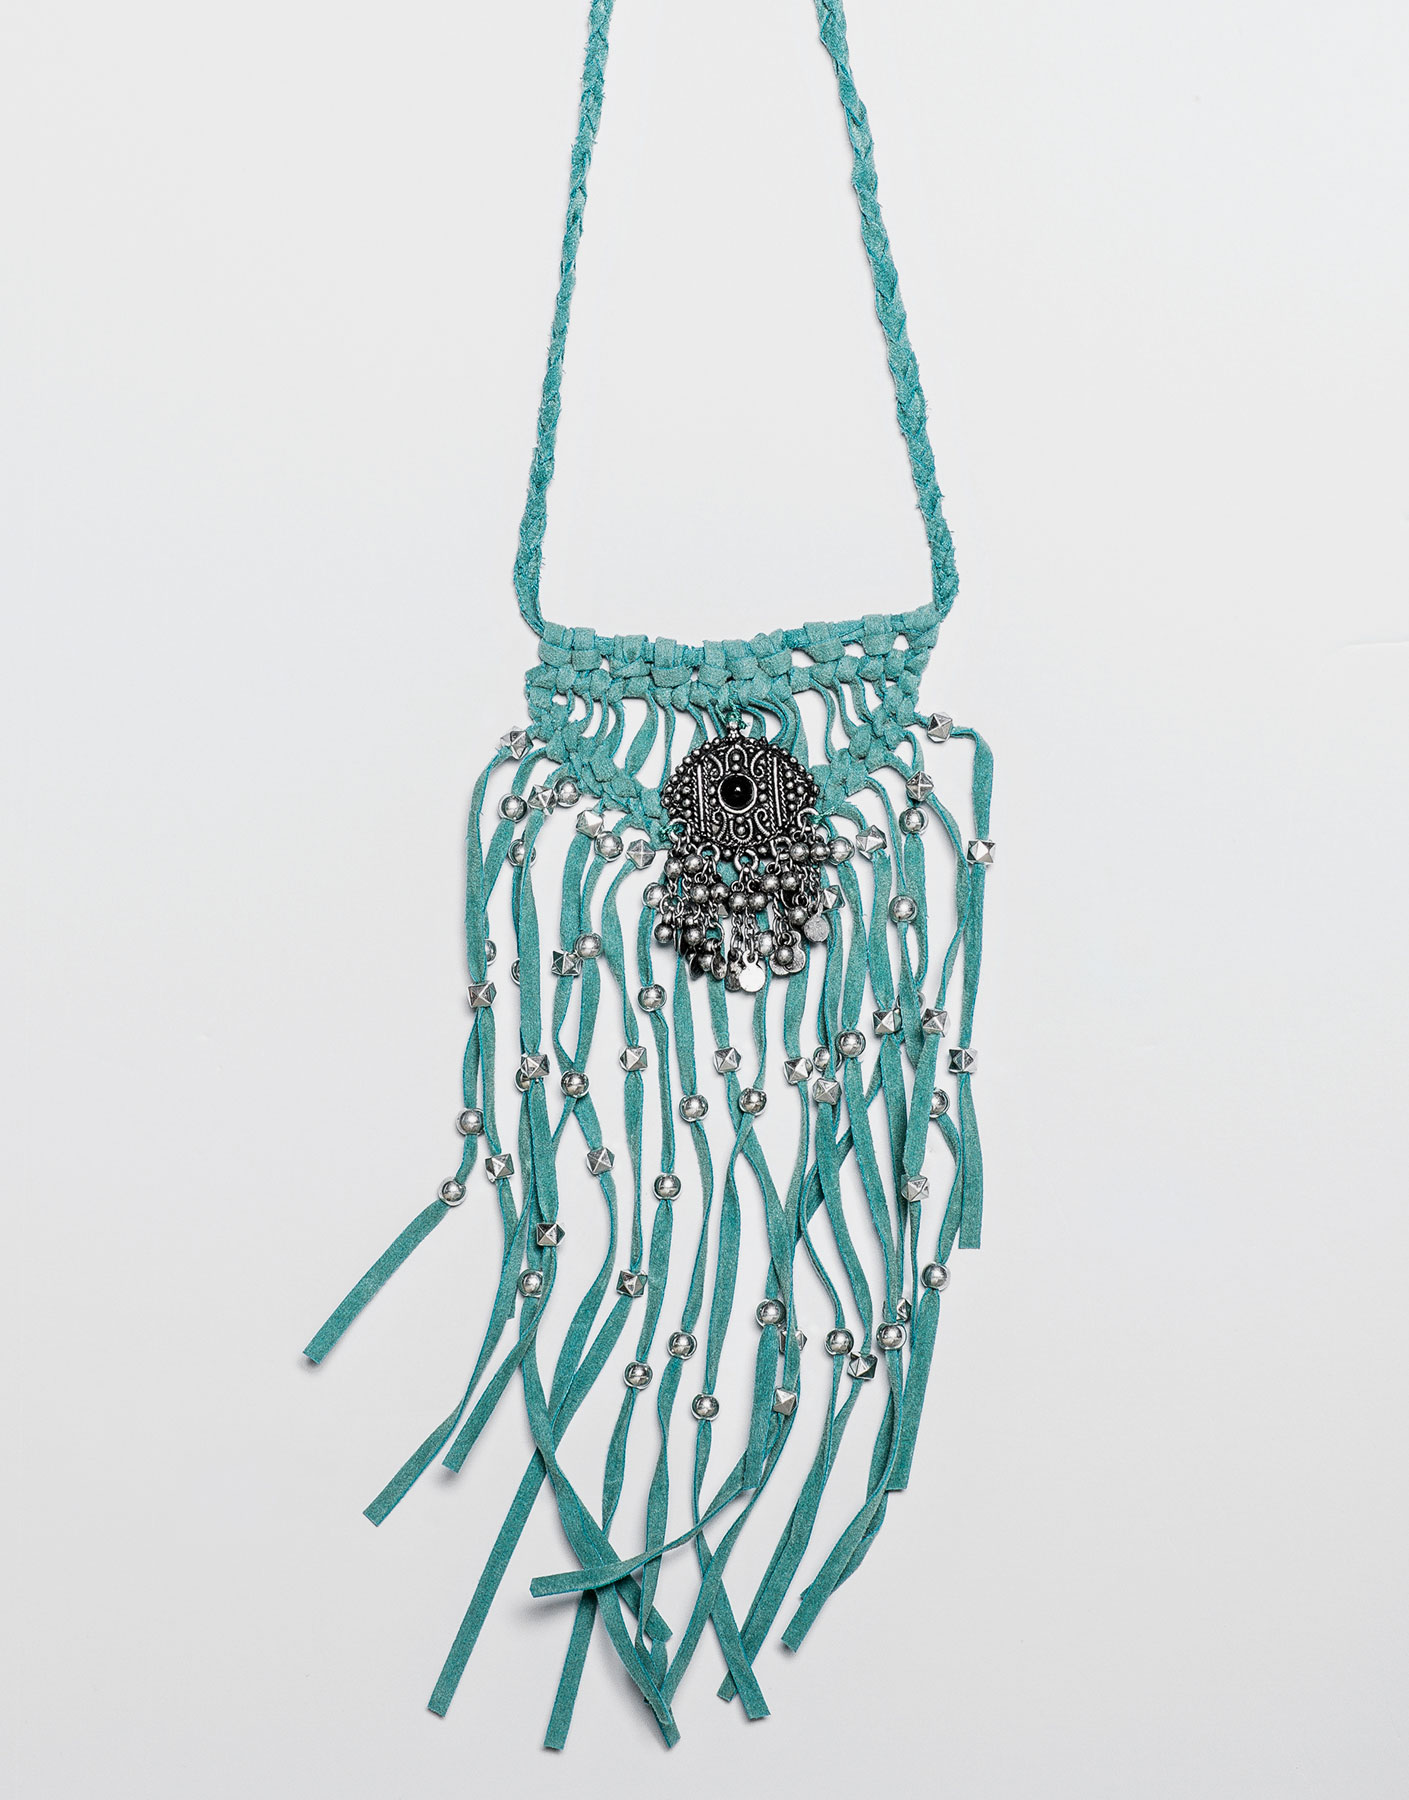 Collier franges turquoise